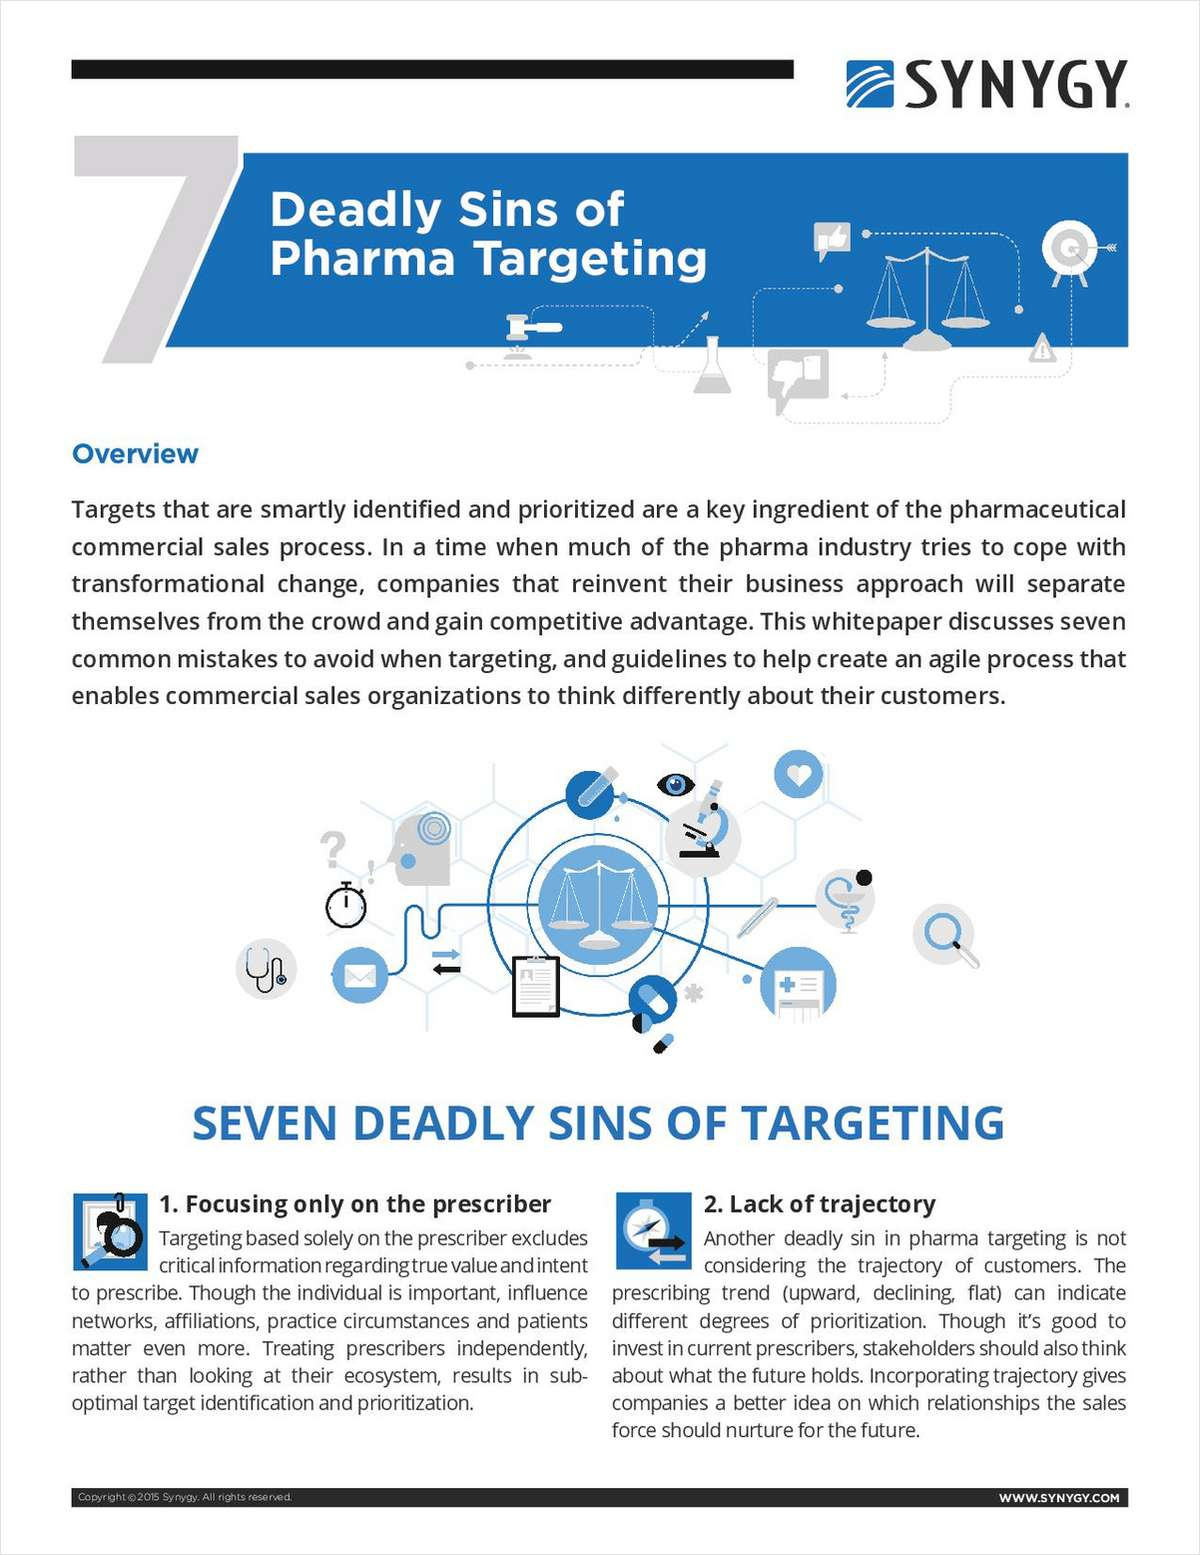 7 Deadly Sins of Pharma Targeting